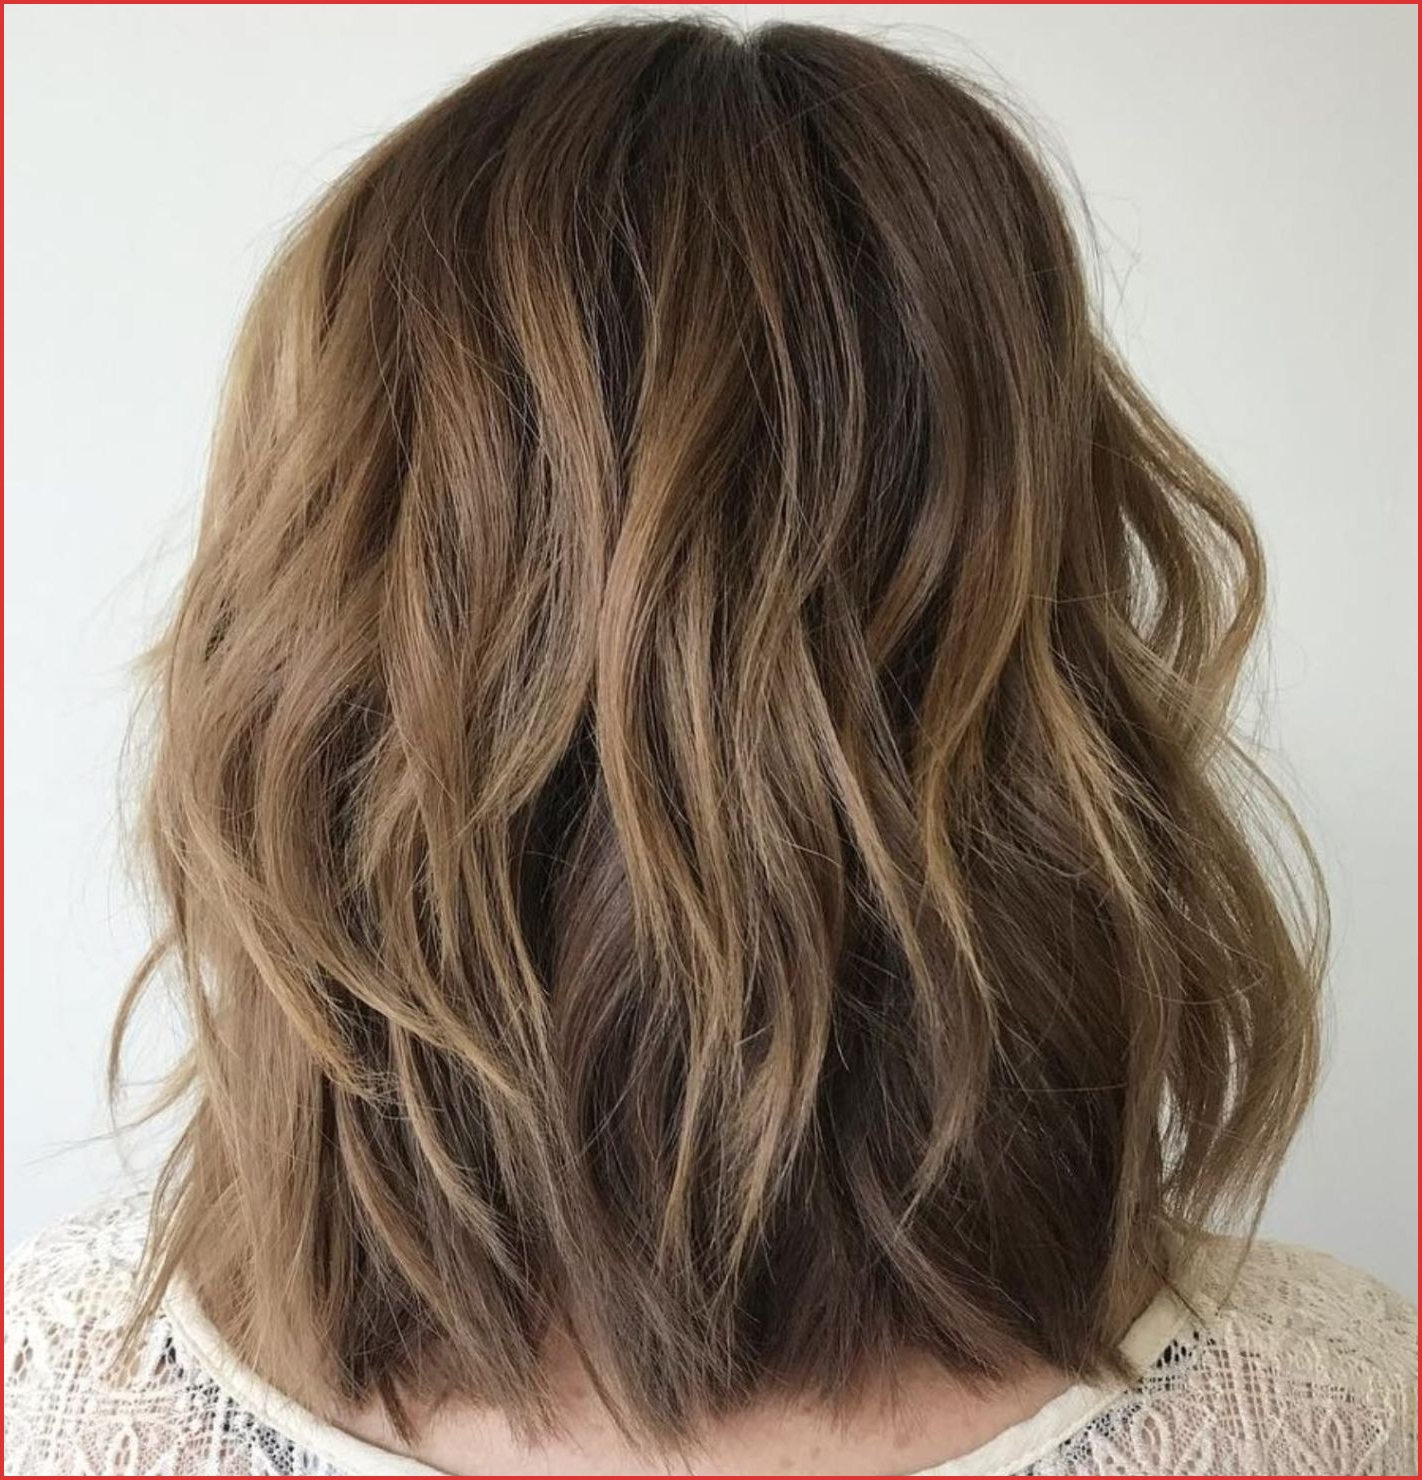 Choppy Layered Haircuts 12026 Kaley Cuoco Pinterest – Hairstyle Ideas Pertaining To Most Recent Kaley Cuoco Medium Hairstyles (View 5 of 20)